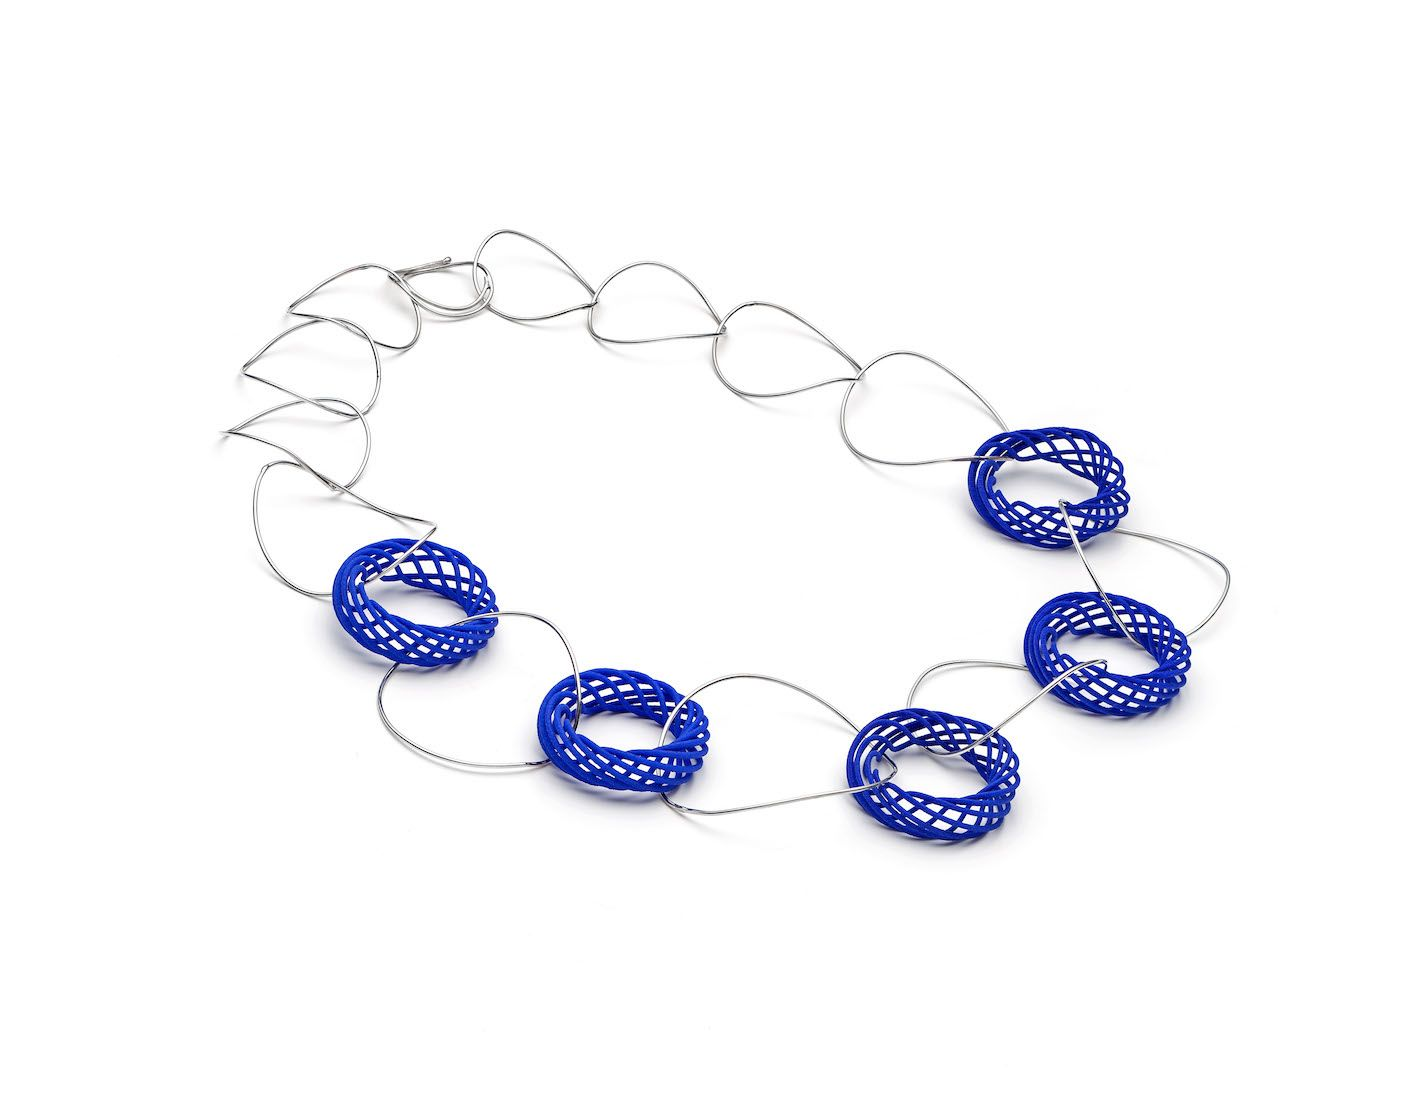 This necklace has vortex pieces and is a cm in length made